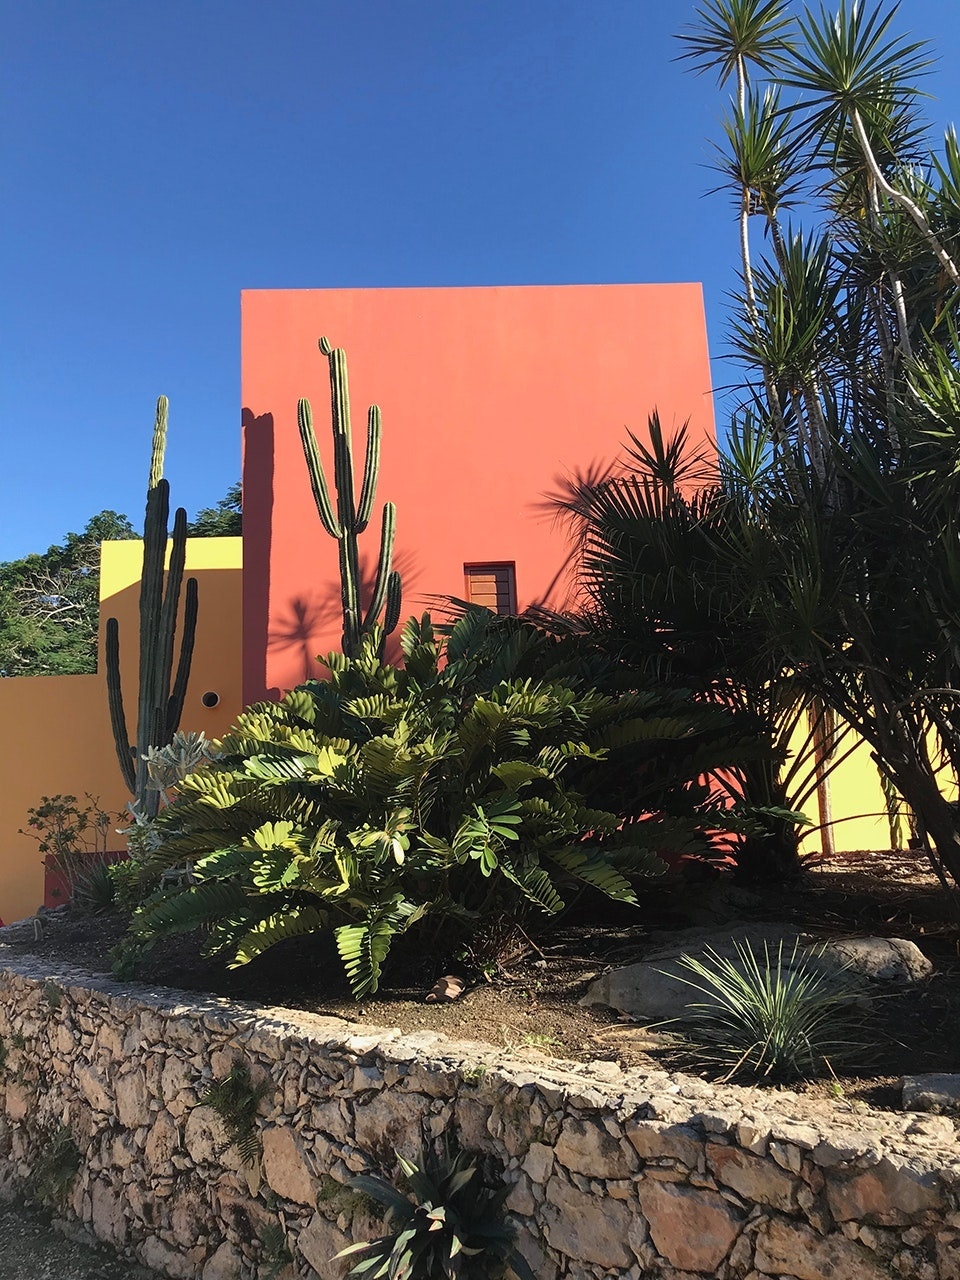 Beautifully designed Airbnbs like Casa del Limonero are easy to book in Mérida.